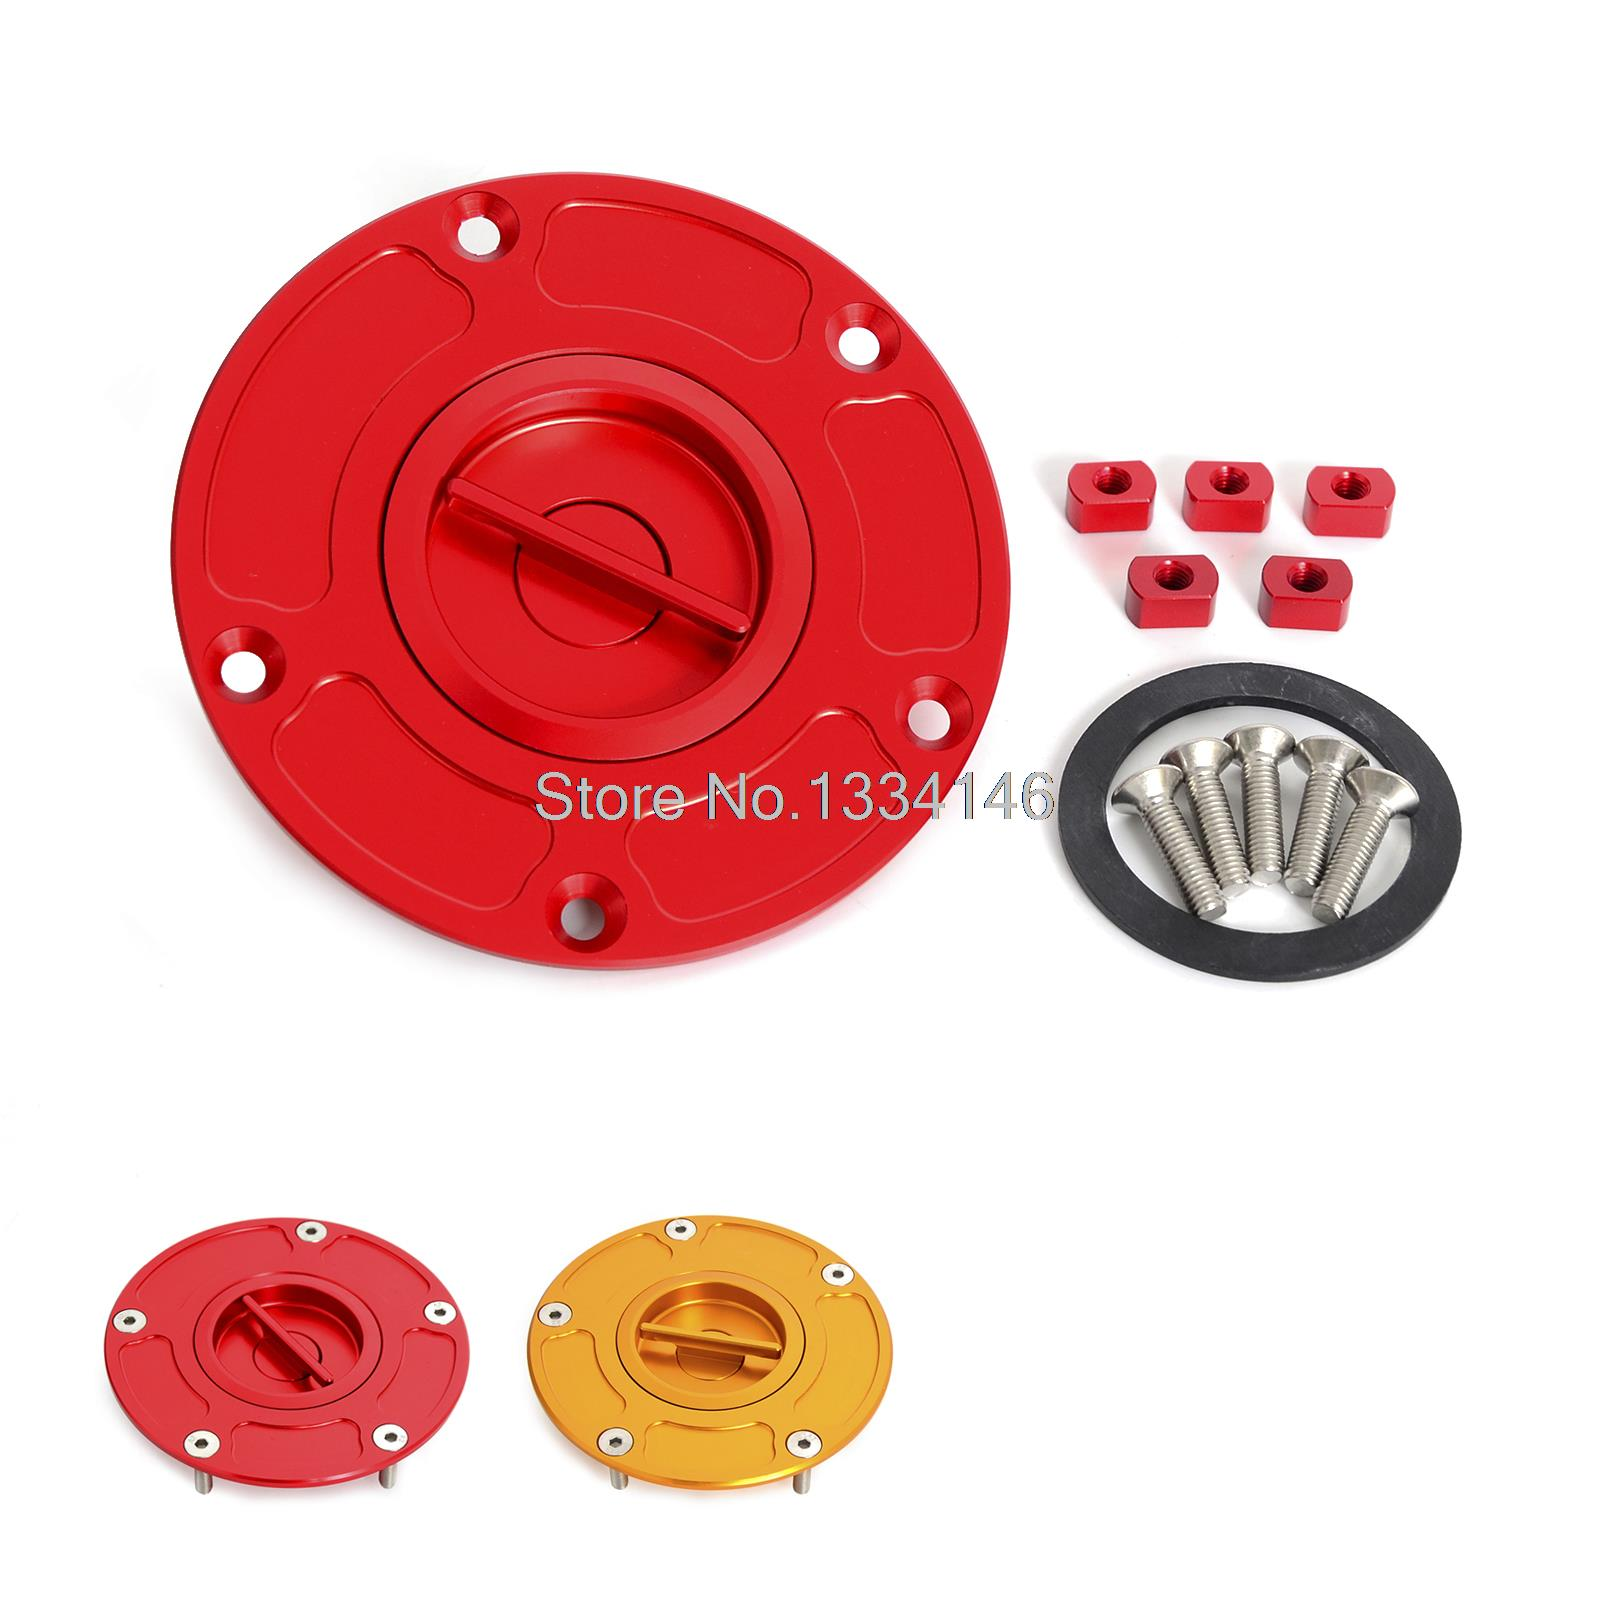 Aluminum Fuel Gas Cap Anodized Fit For DUCATI MONSTER 696 / 796 / 1100 / EVO - All Years aluminum water cool flange fits 26 29cc qj zenoah rcmk cy gas engine for rc boat